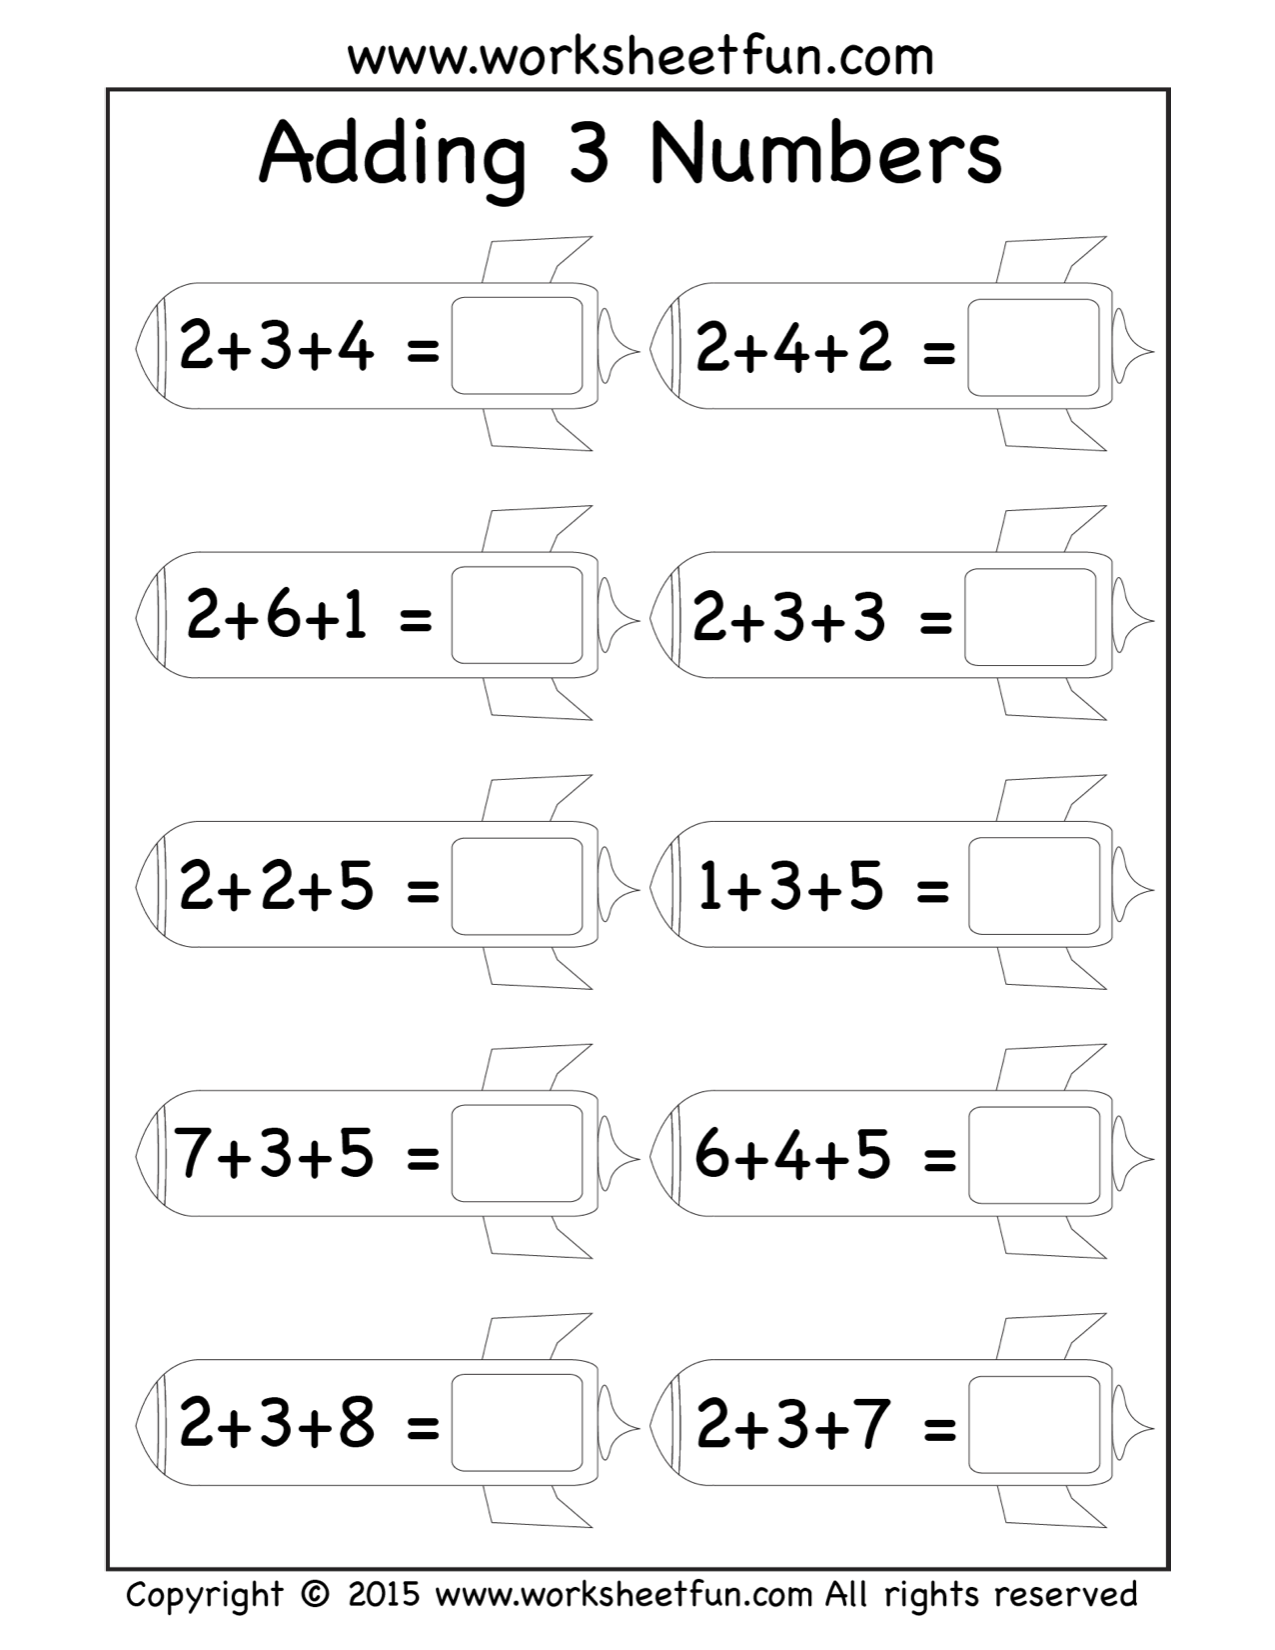 worksheet Adding Three Numbers free three addend worksheets adding 3 numbers rockets maths rockets